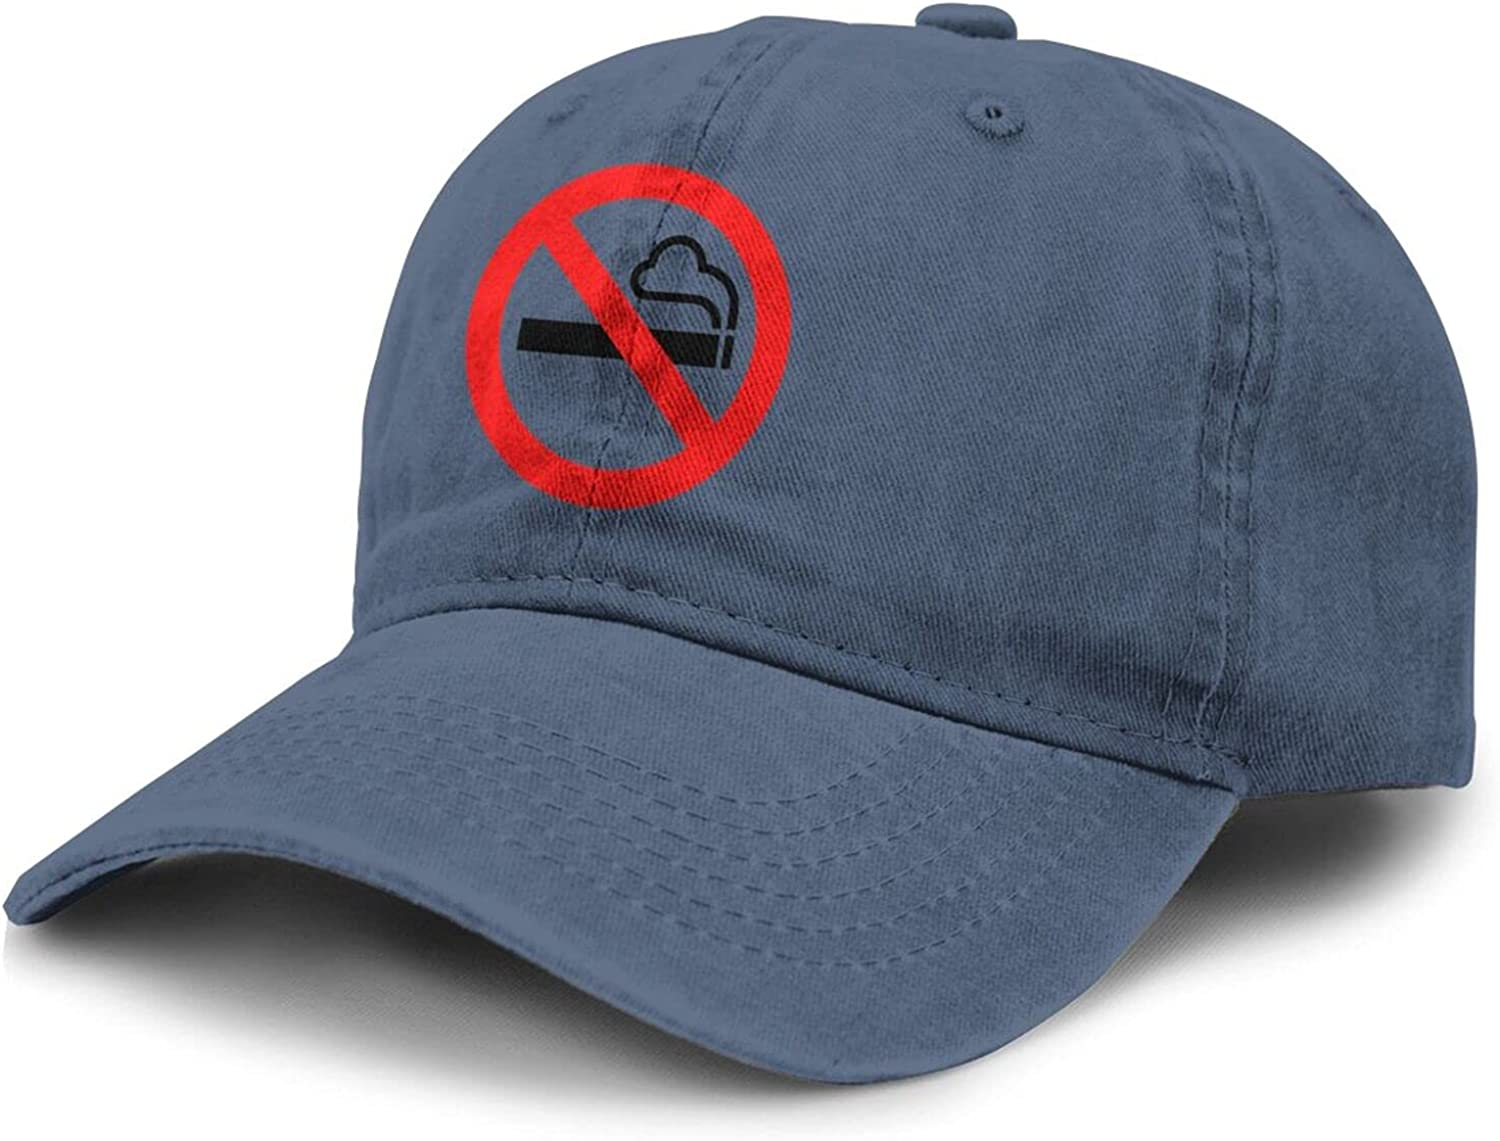 No Plug Icon Cheap and Durable Adult Cowboy Hat Unisex